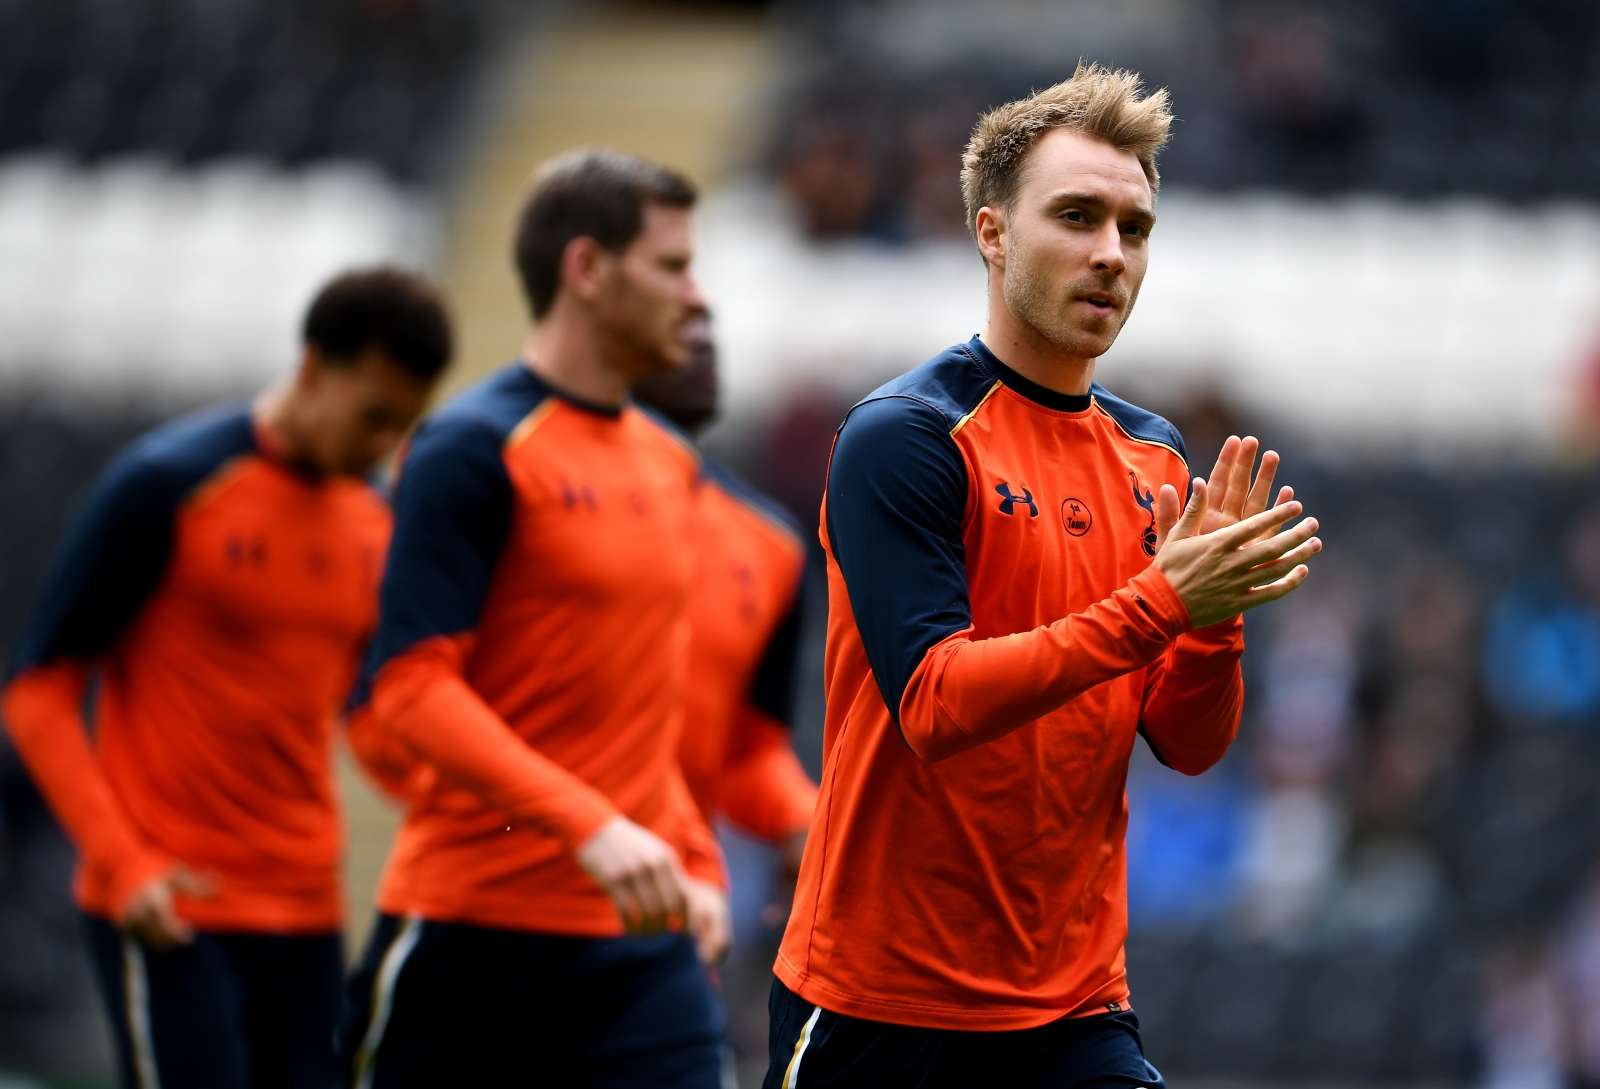 Not many players can say no to Barca, says Eriksen